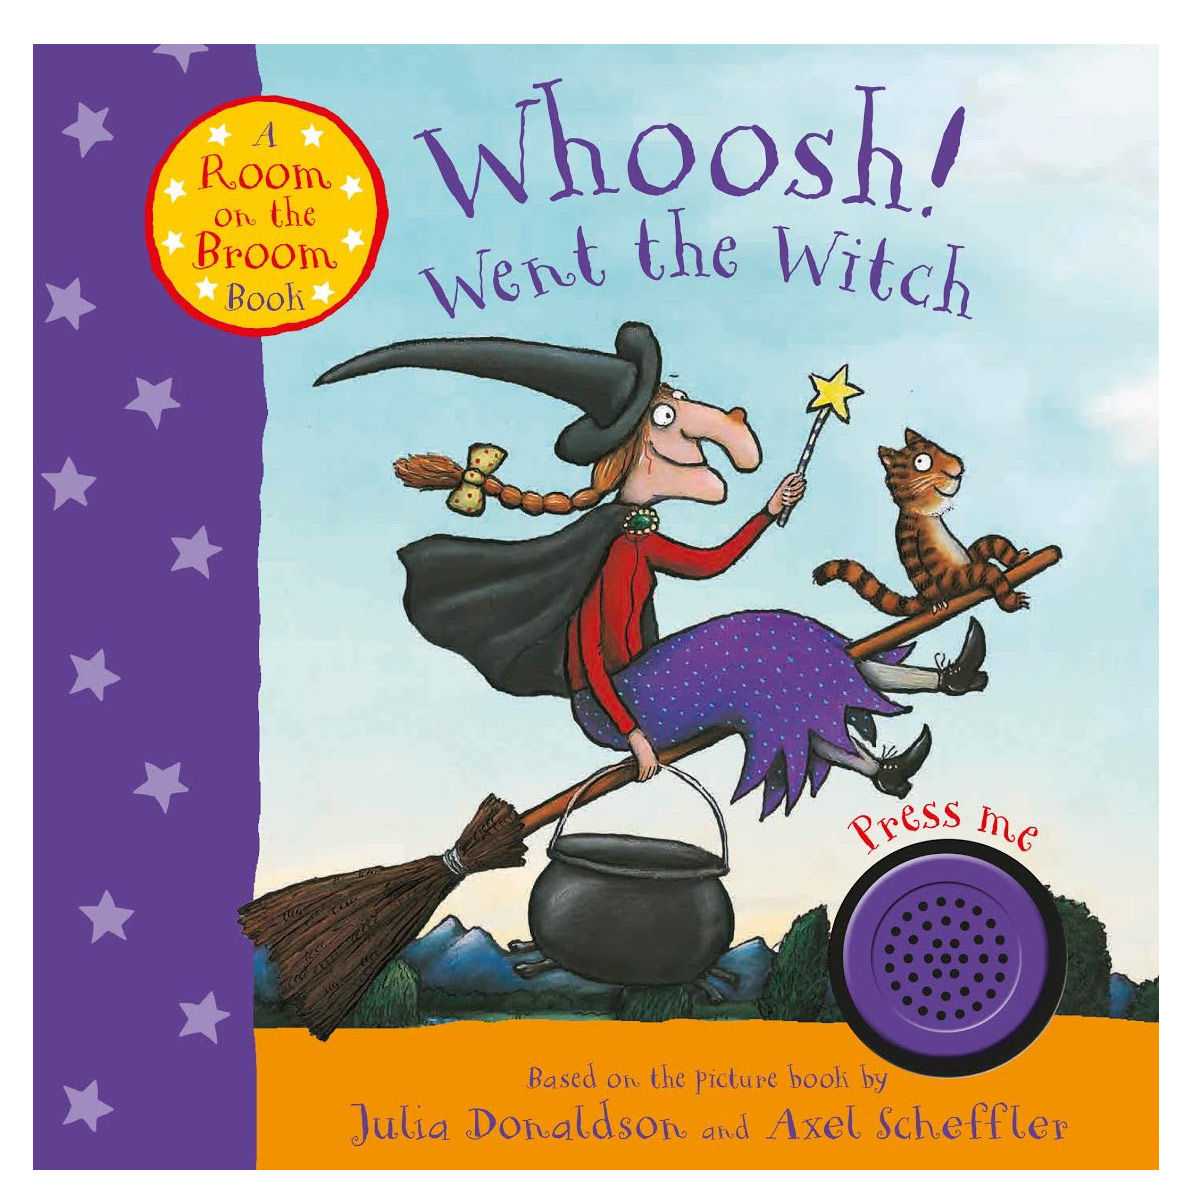 Children's Books Axel Scheffler Whoosh! Went the Witch: A Room on the Broom Book